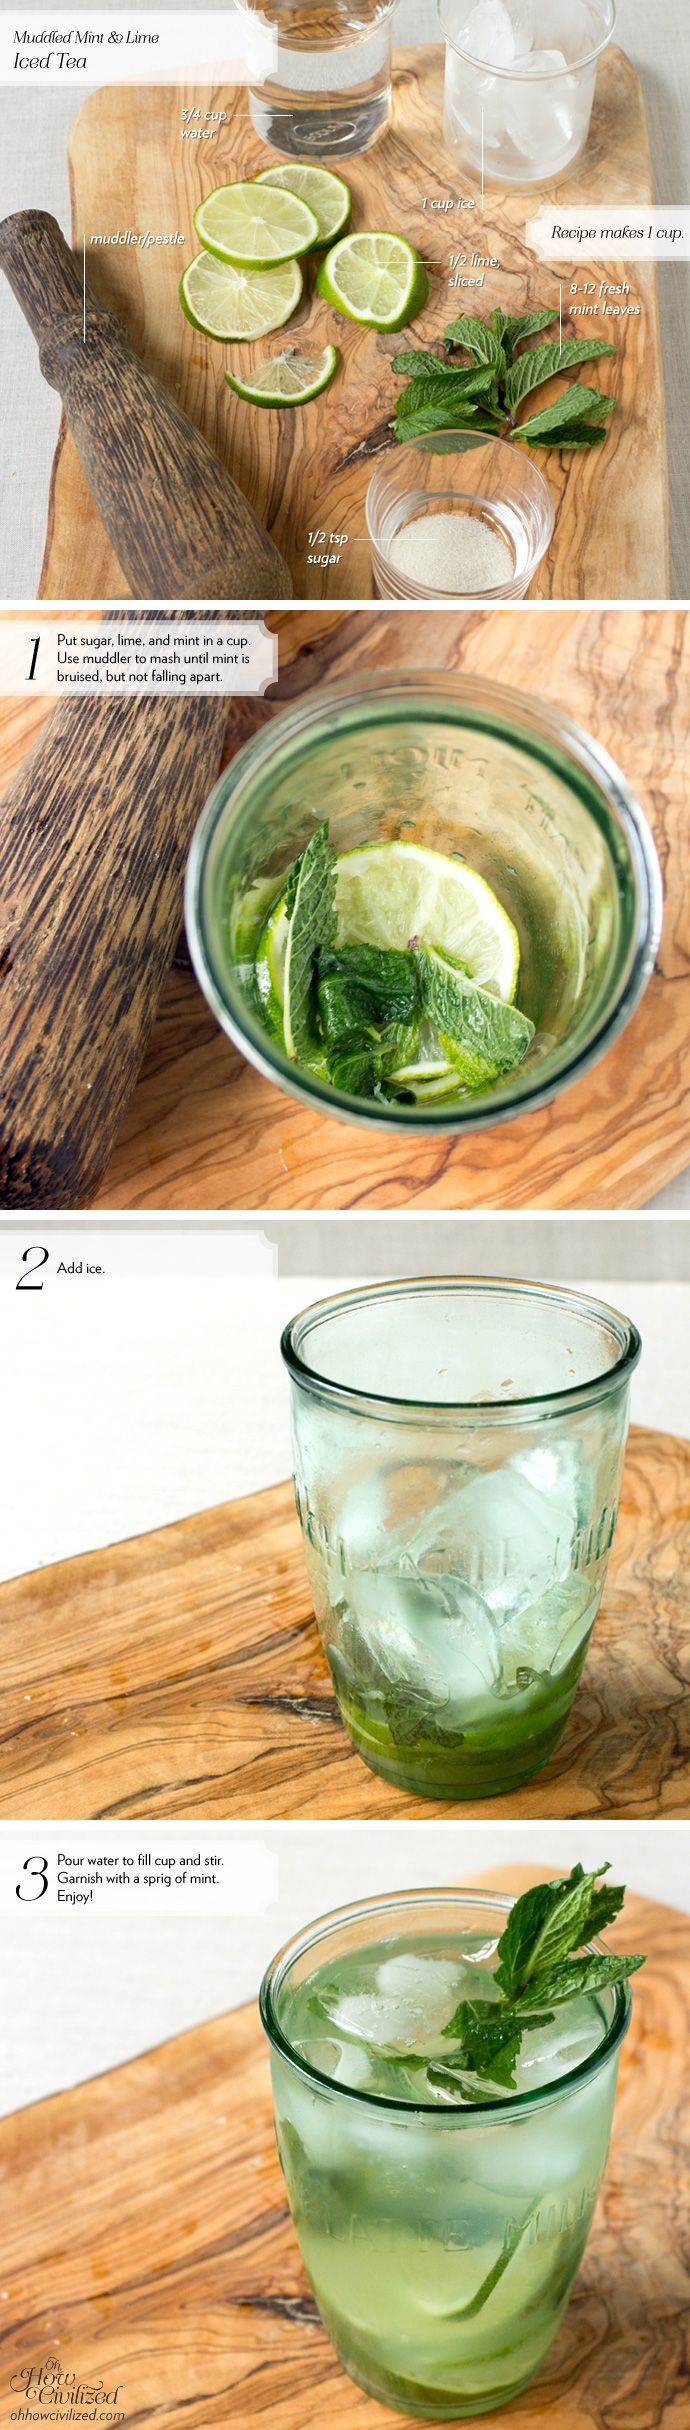 Muddled Mint & Lime Iced Tea | Recipes | Pinterest